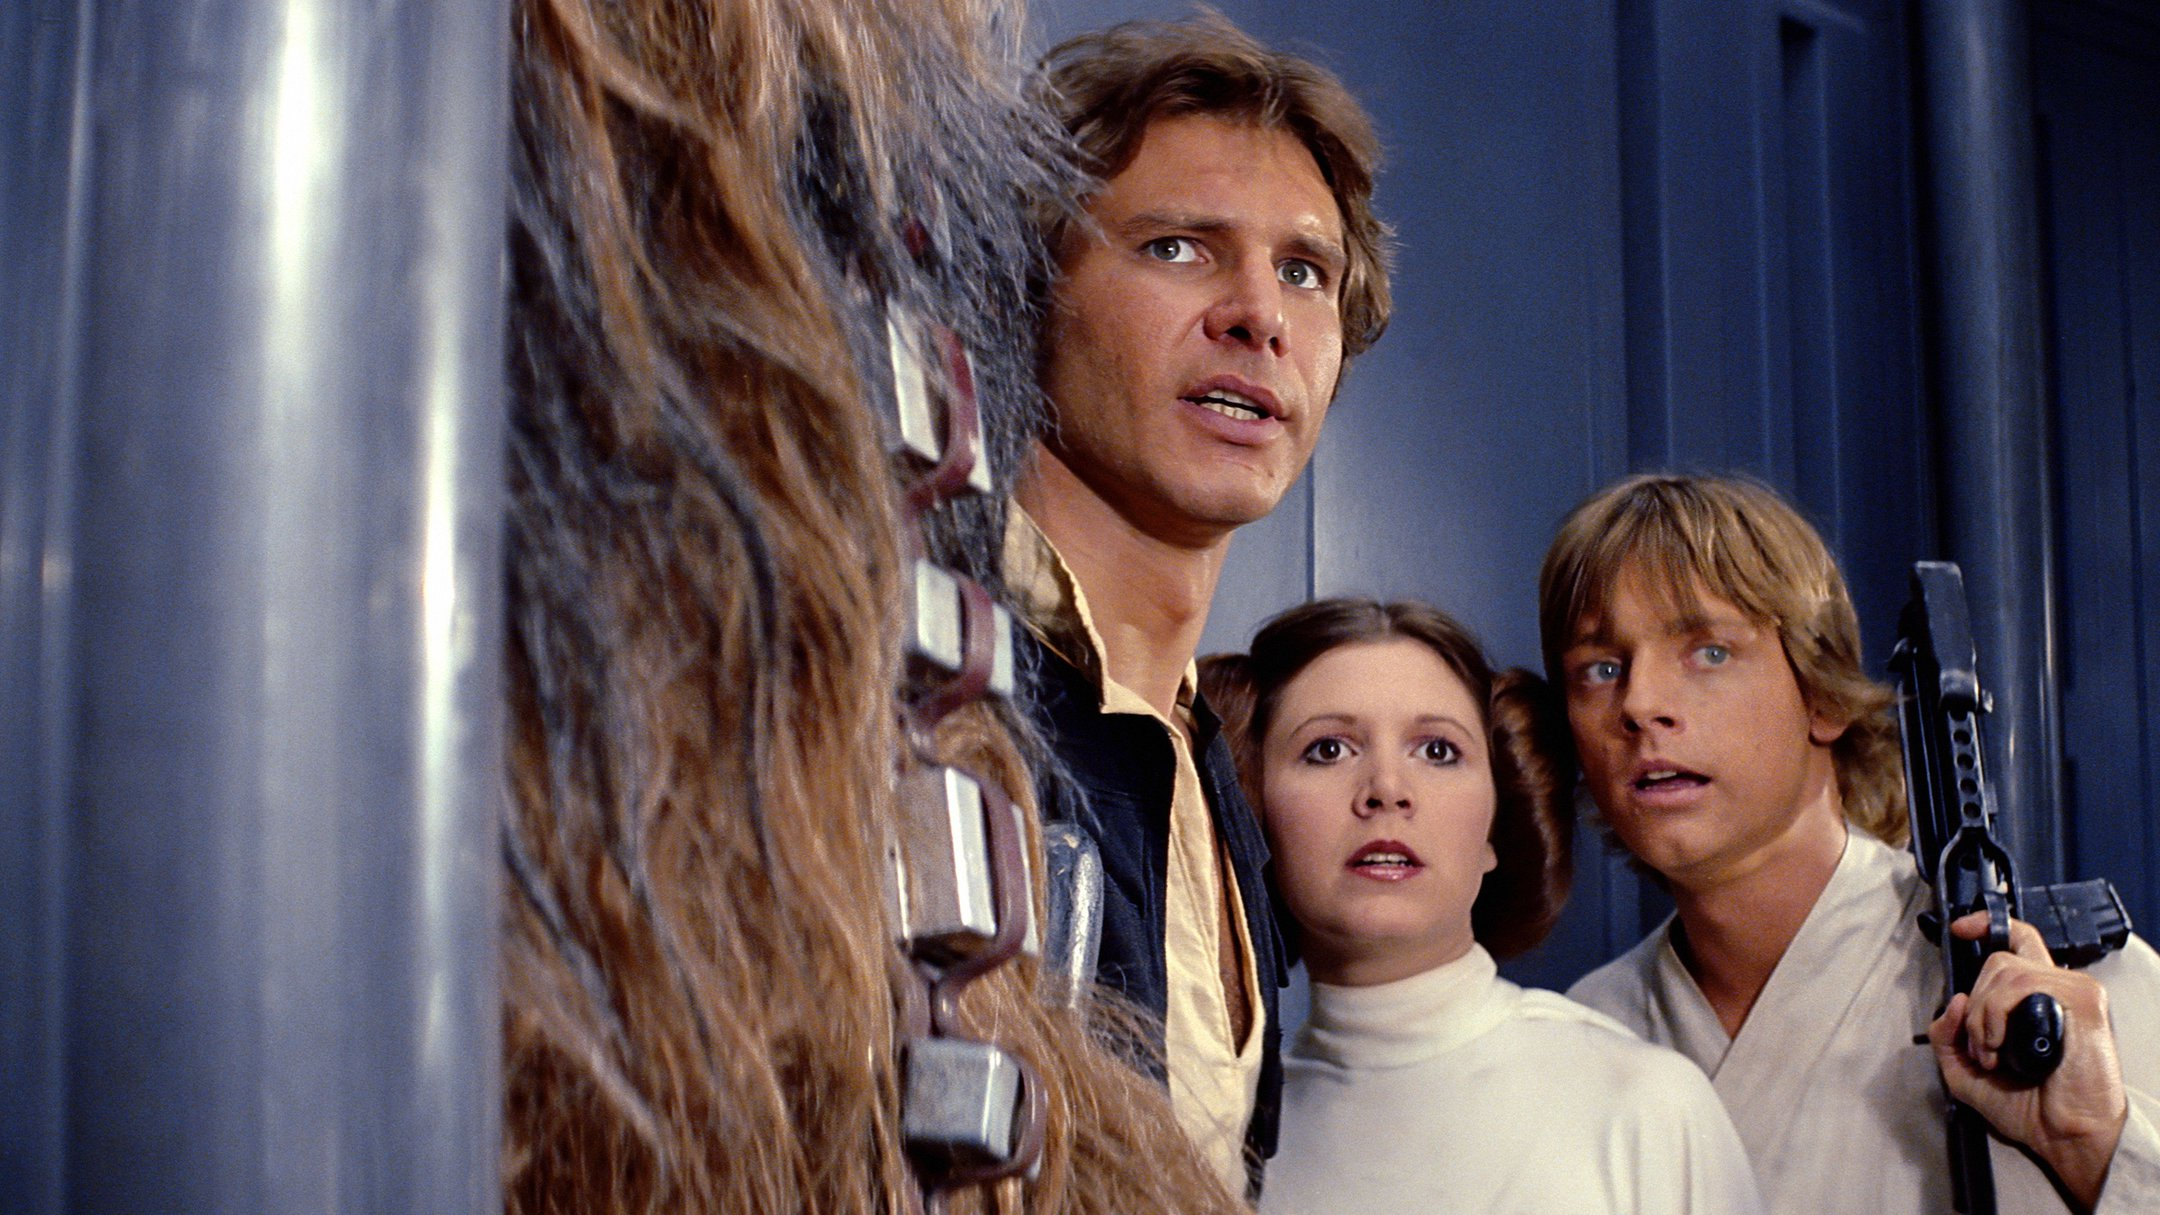 Harrison Ford, Carrie Fisher, and Mark Hamill in 'Star Wars- A New Hope' (1977)